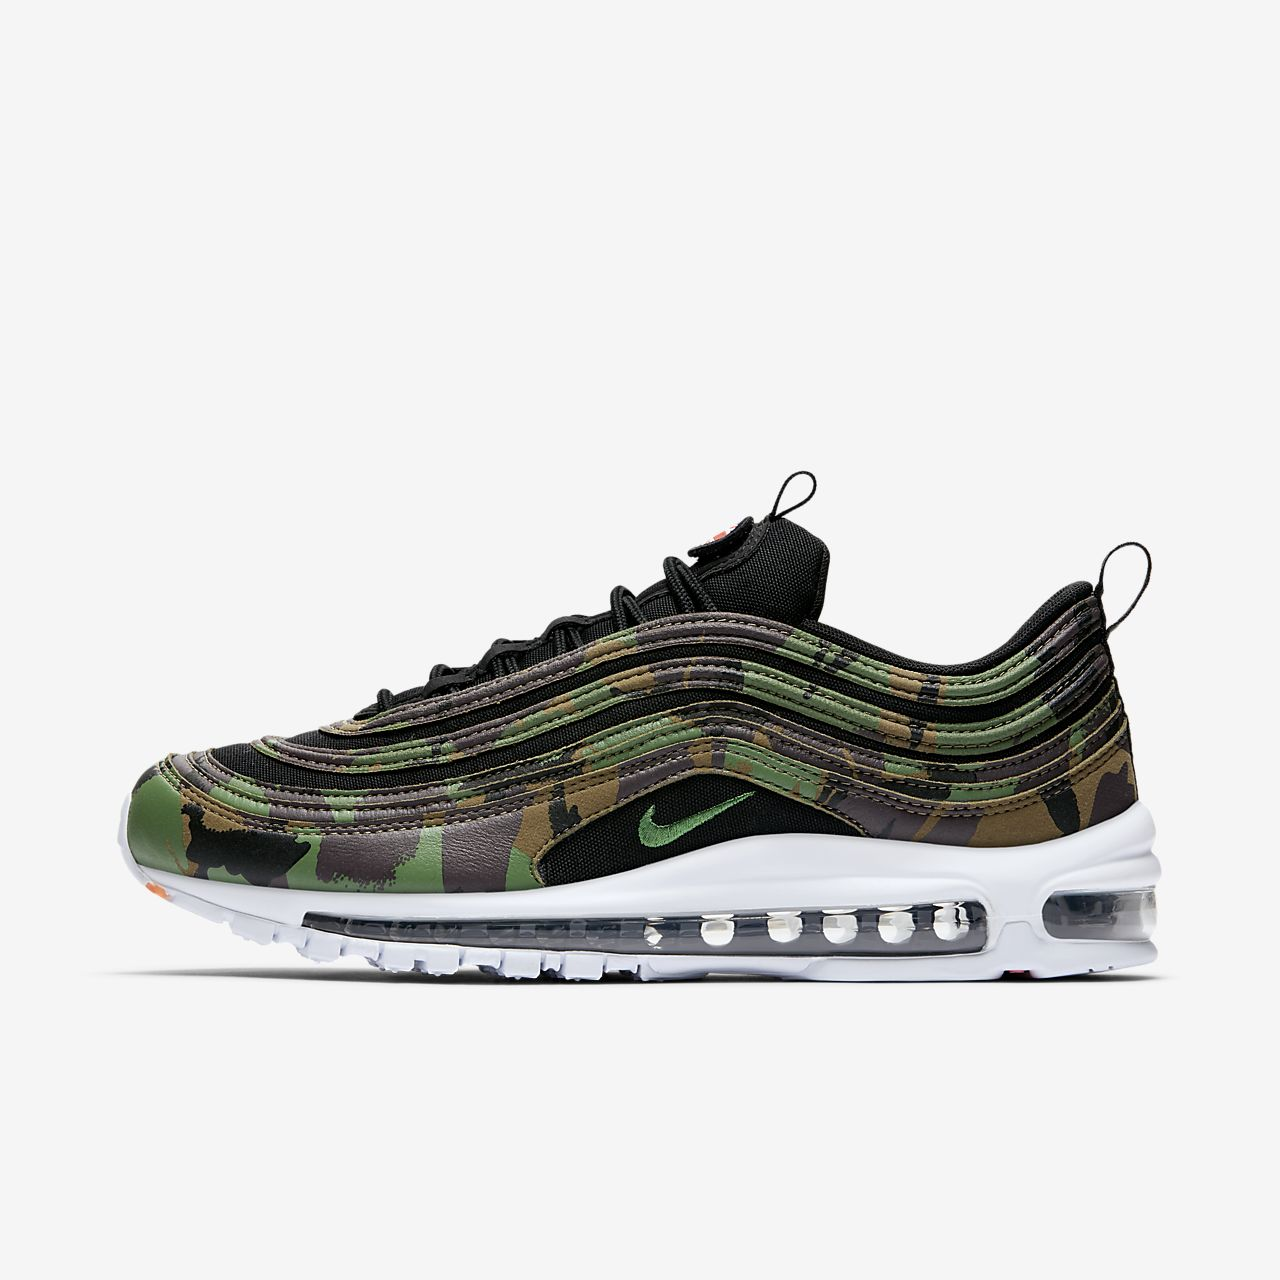 ... Nike Air Max 97 Premium QS Men's Shoe